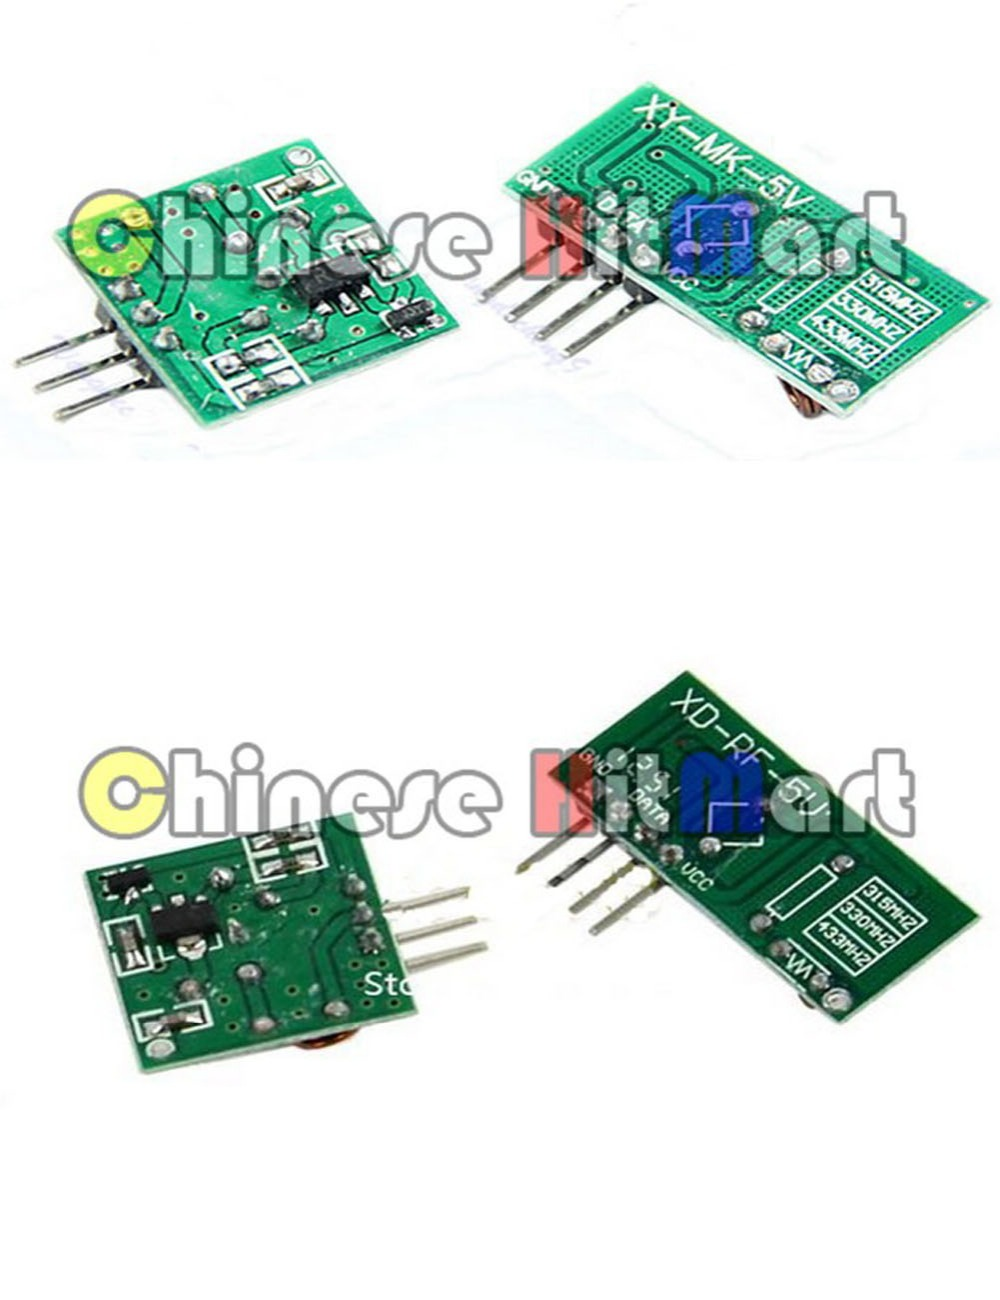 433mhz Rf Transmitter And Receiver Link Module Board Remote Arduino Circuit Controller For High Quality 50pcs Lot Wholesalej339 1 In Integrated Circuits From